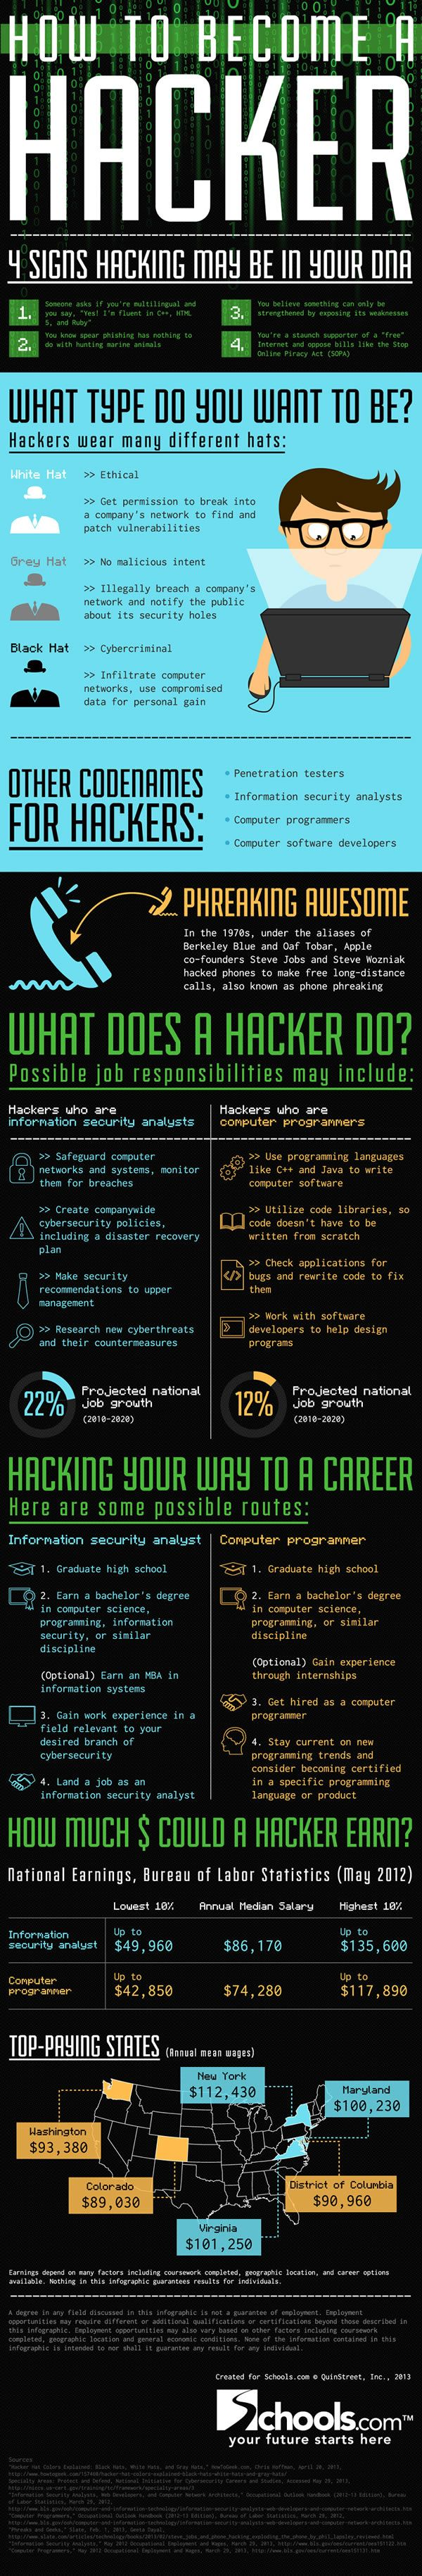 How to become a Hacker?